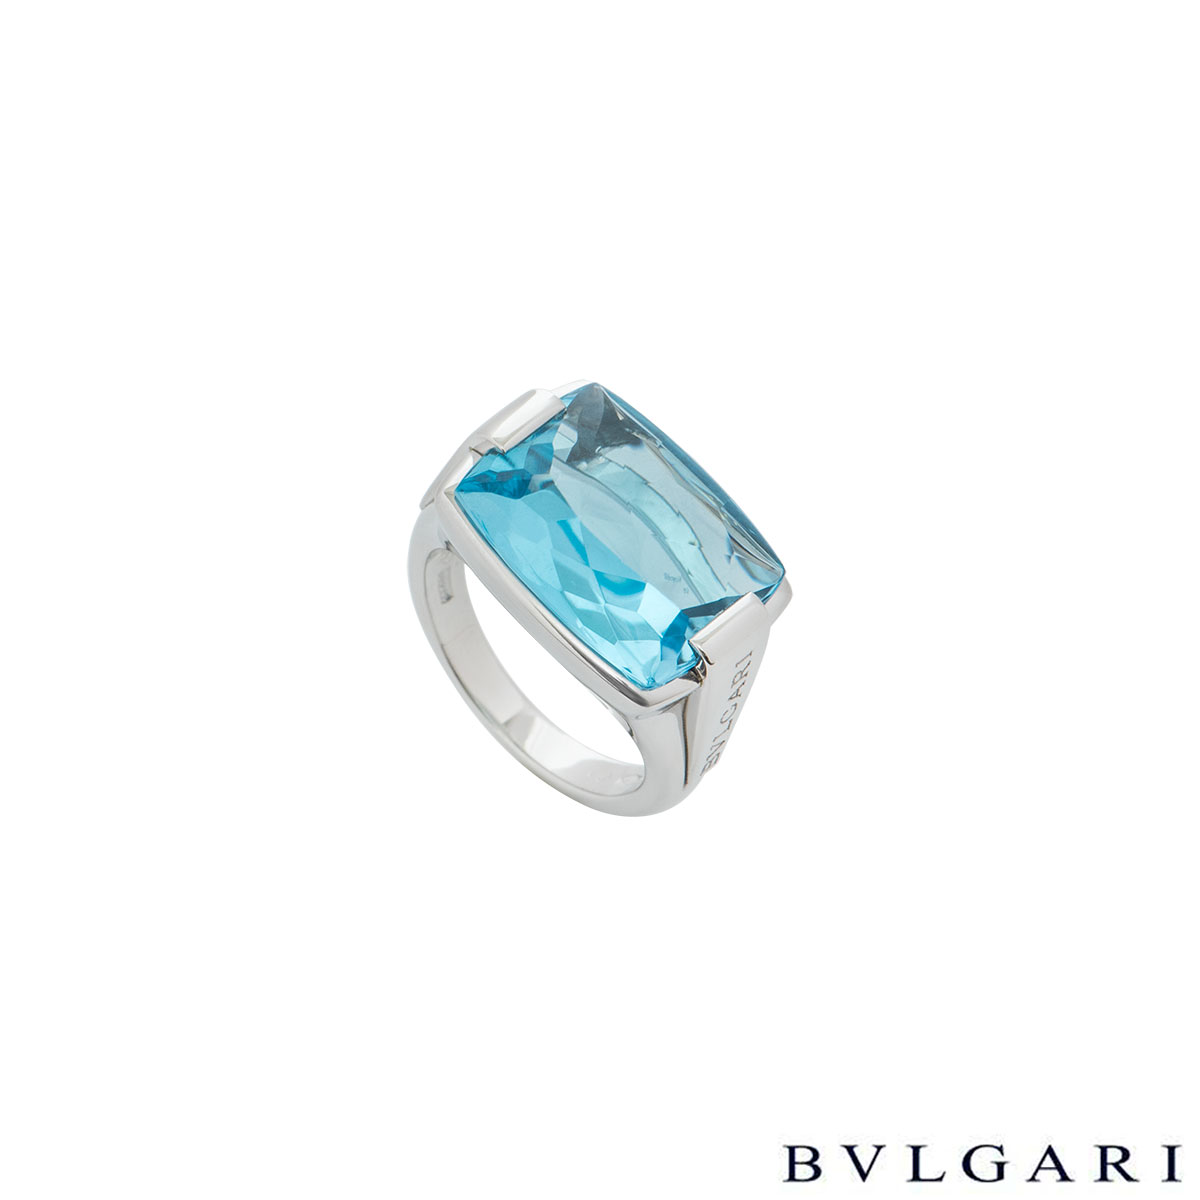 Bvlgari White Gold Blue Topaz Cocktail Ring